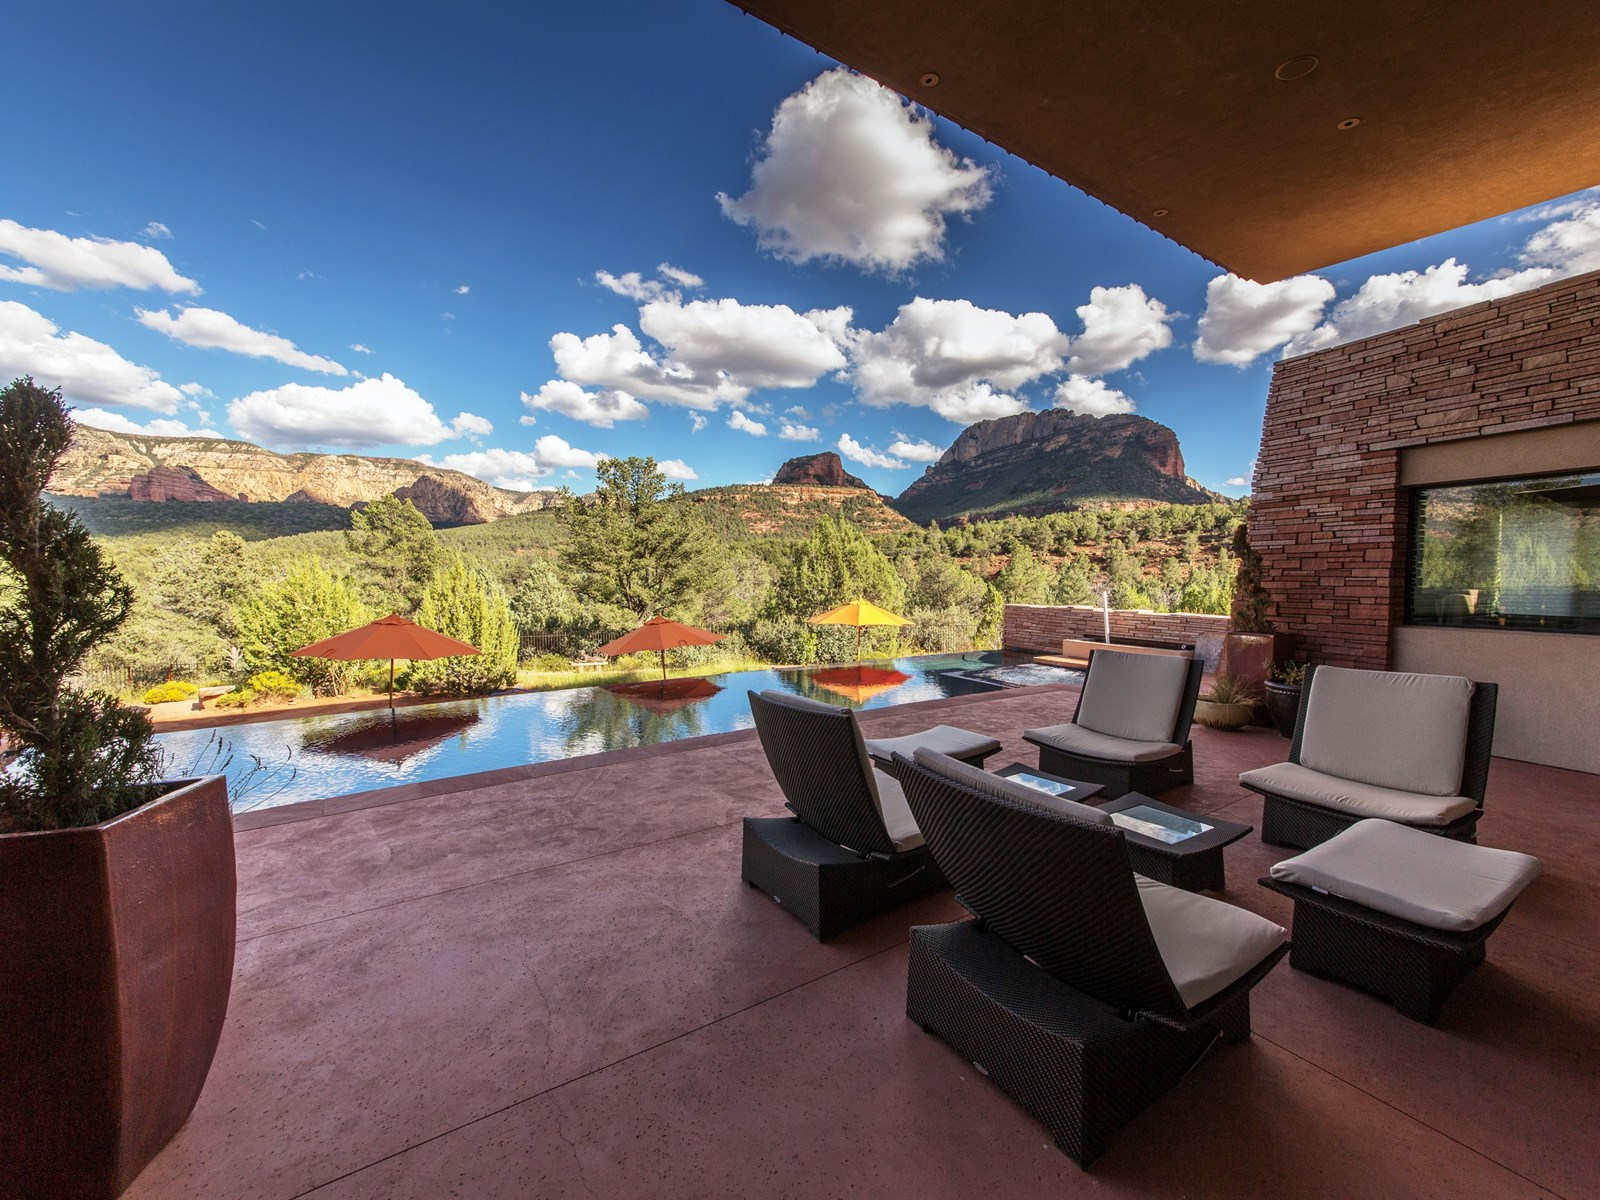 Casa para uma família para Venda às Incredible, Unique, and Dramatic Natural Beauty 105 Canyon Vista Rd Sedona, Arizona 86336 Estados Unidos